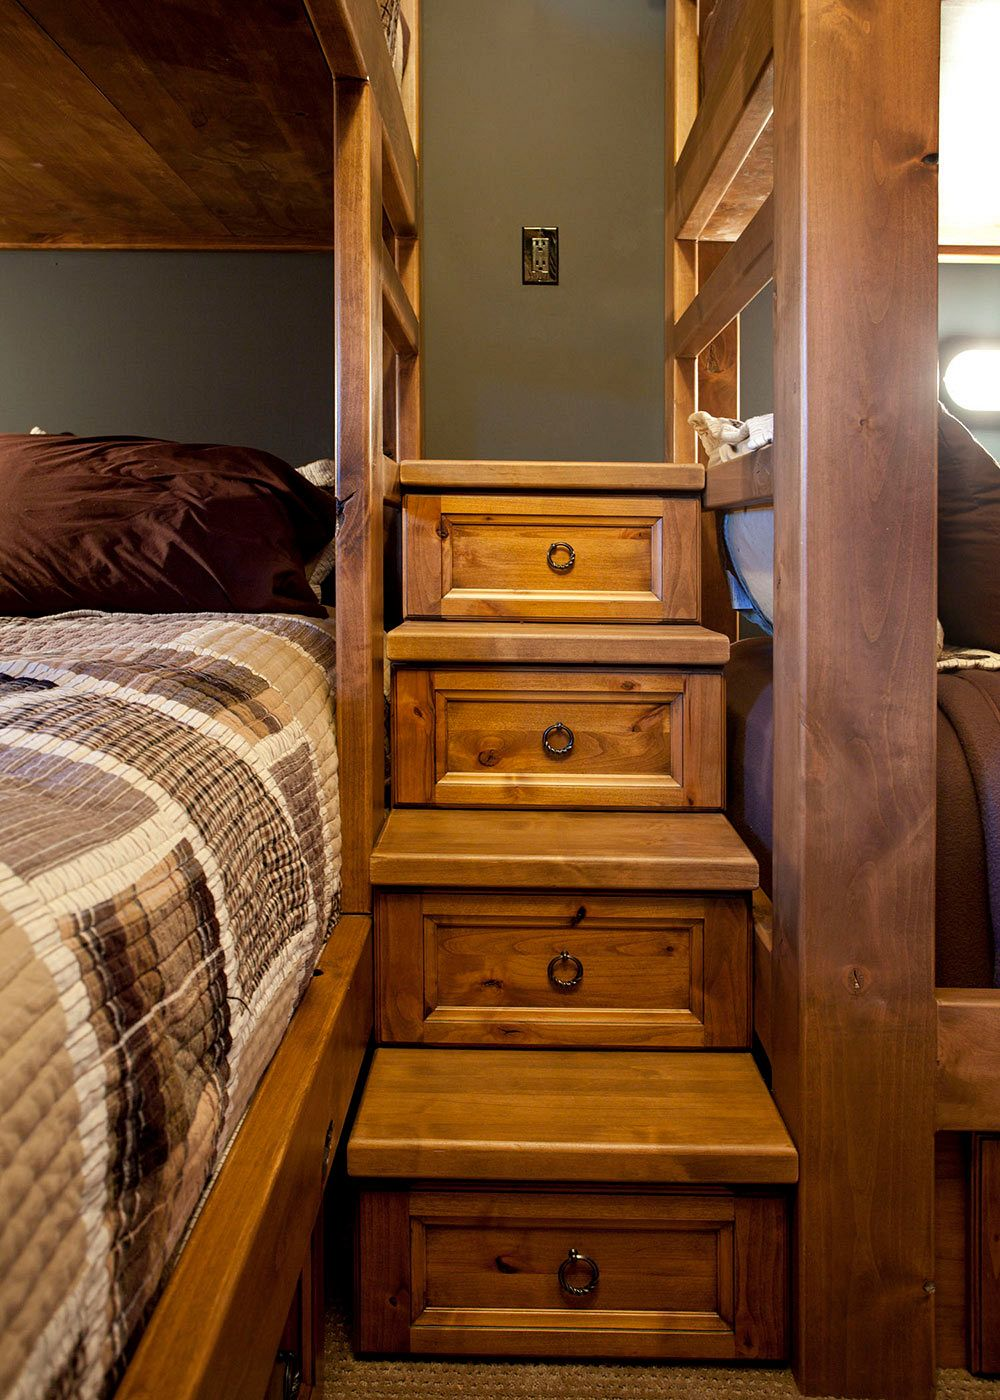 Bunk Bed steps with drawers.